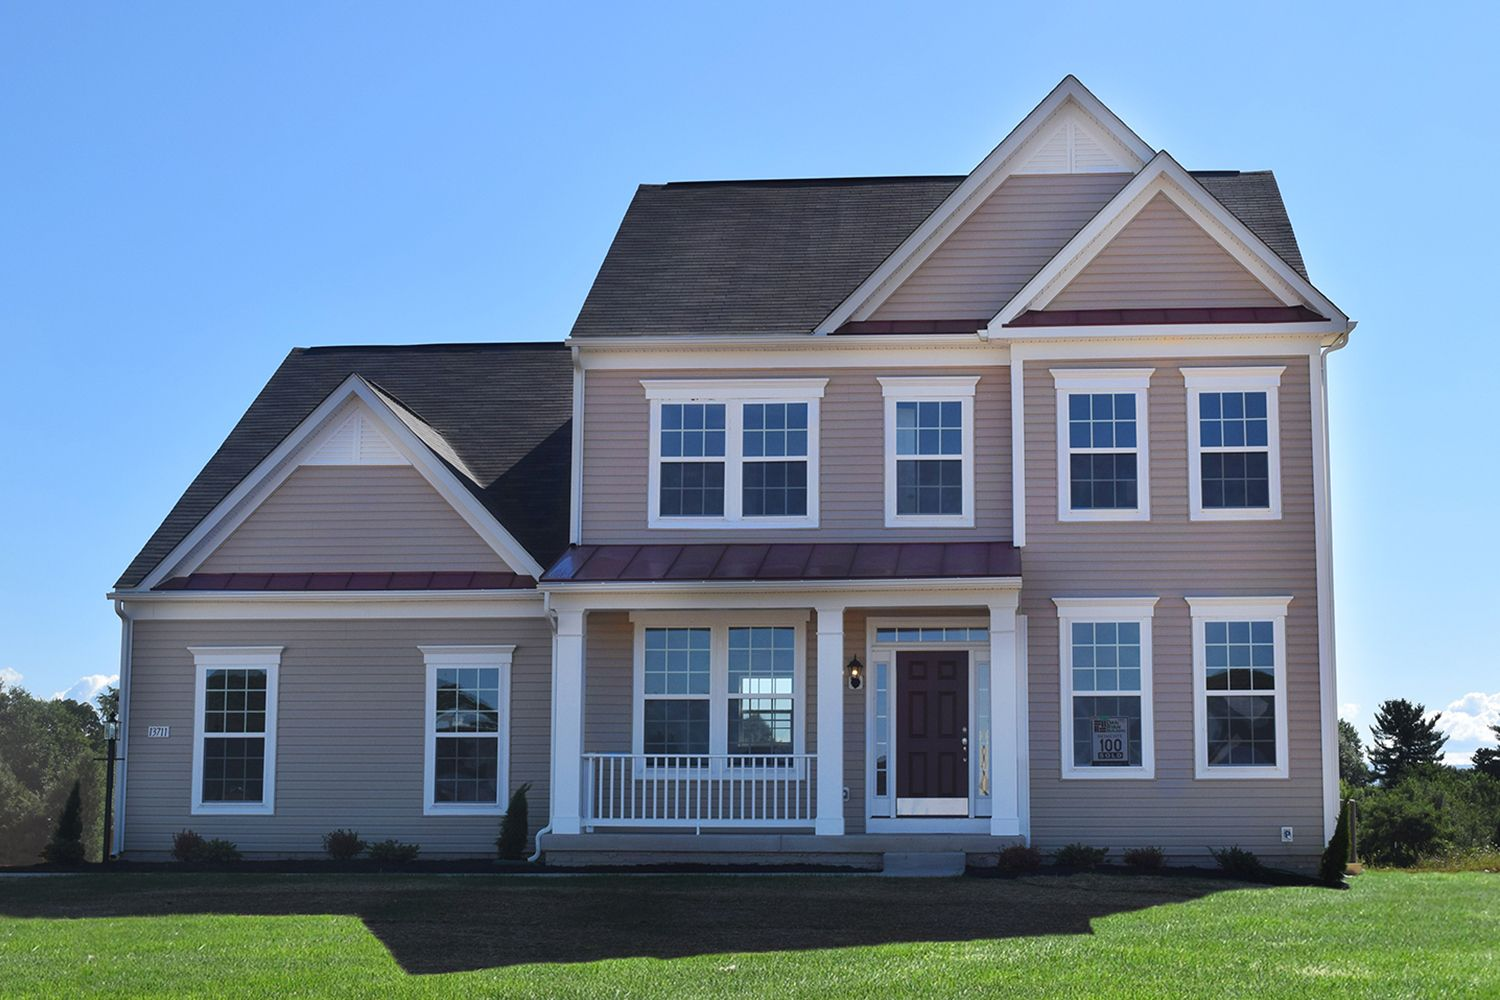 Mccauley crossing new homes in bunker hill wv by dan ryan for Wv home builders